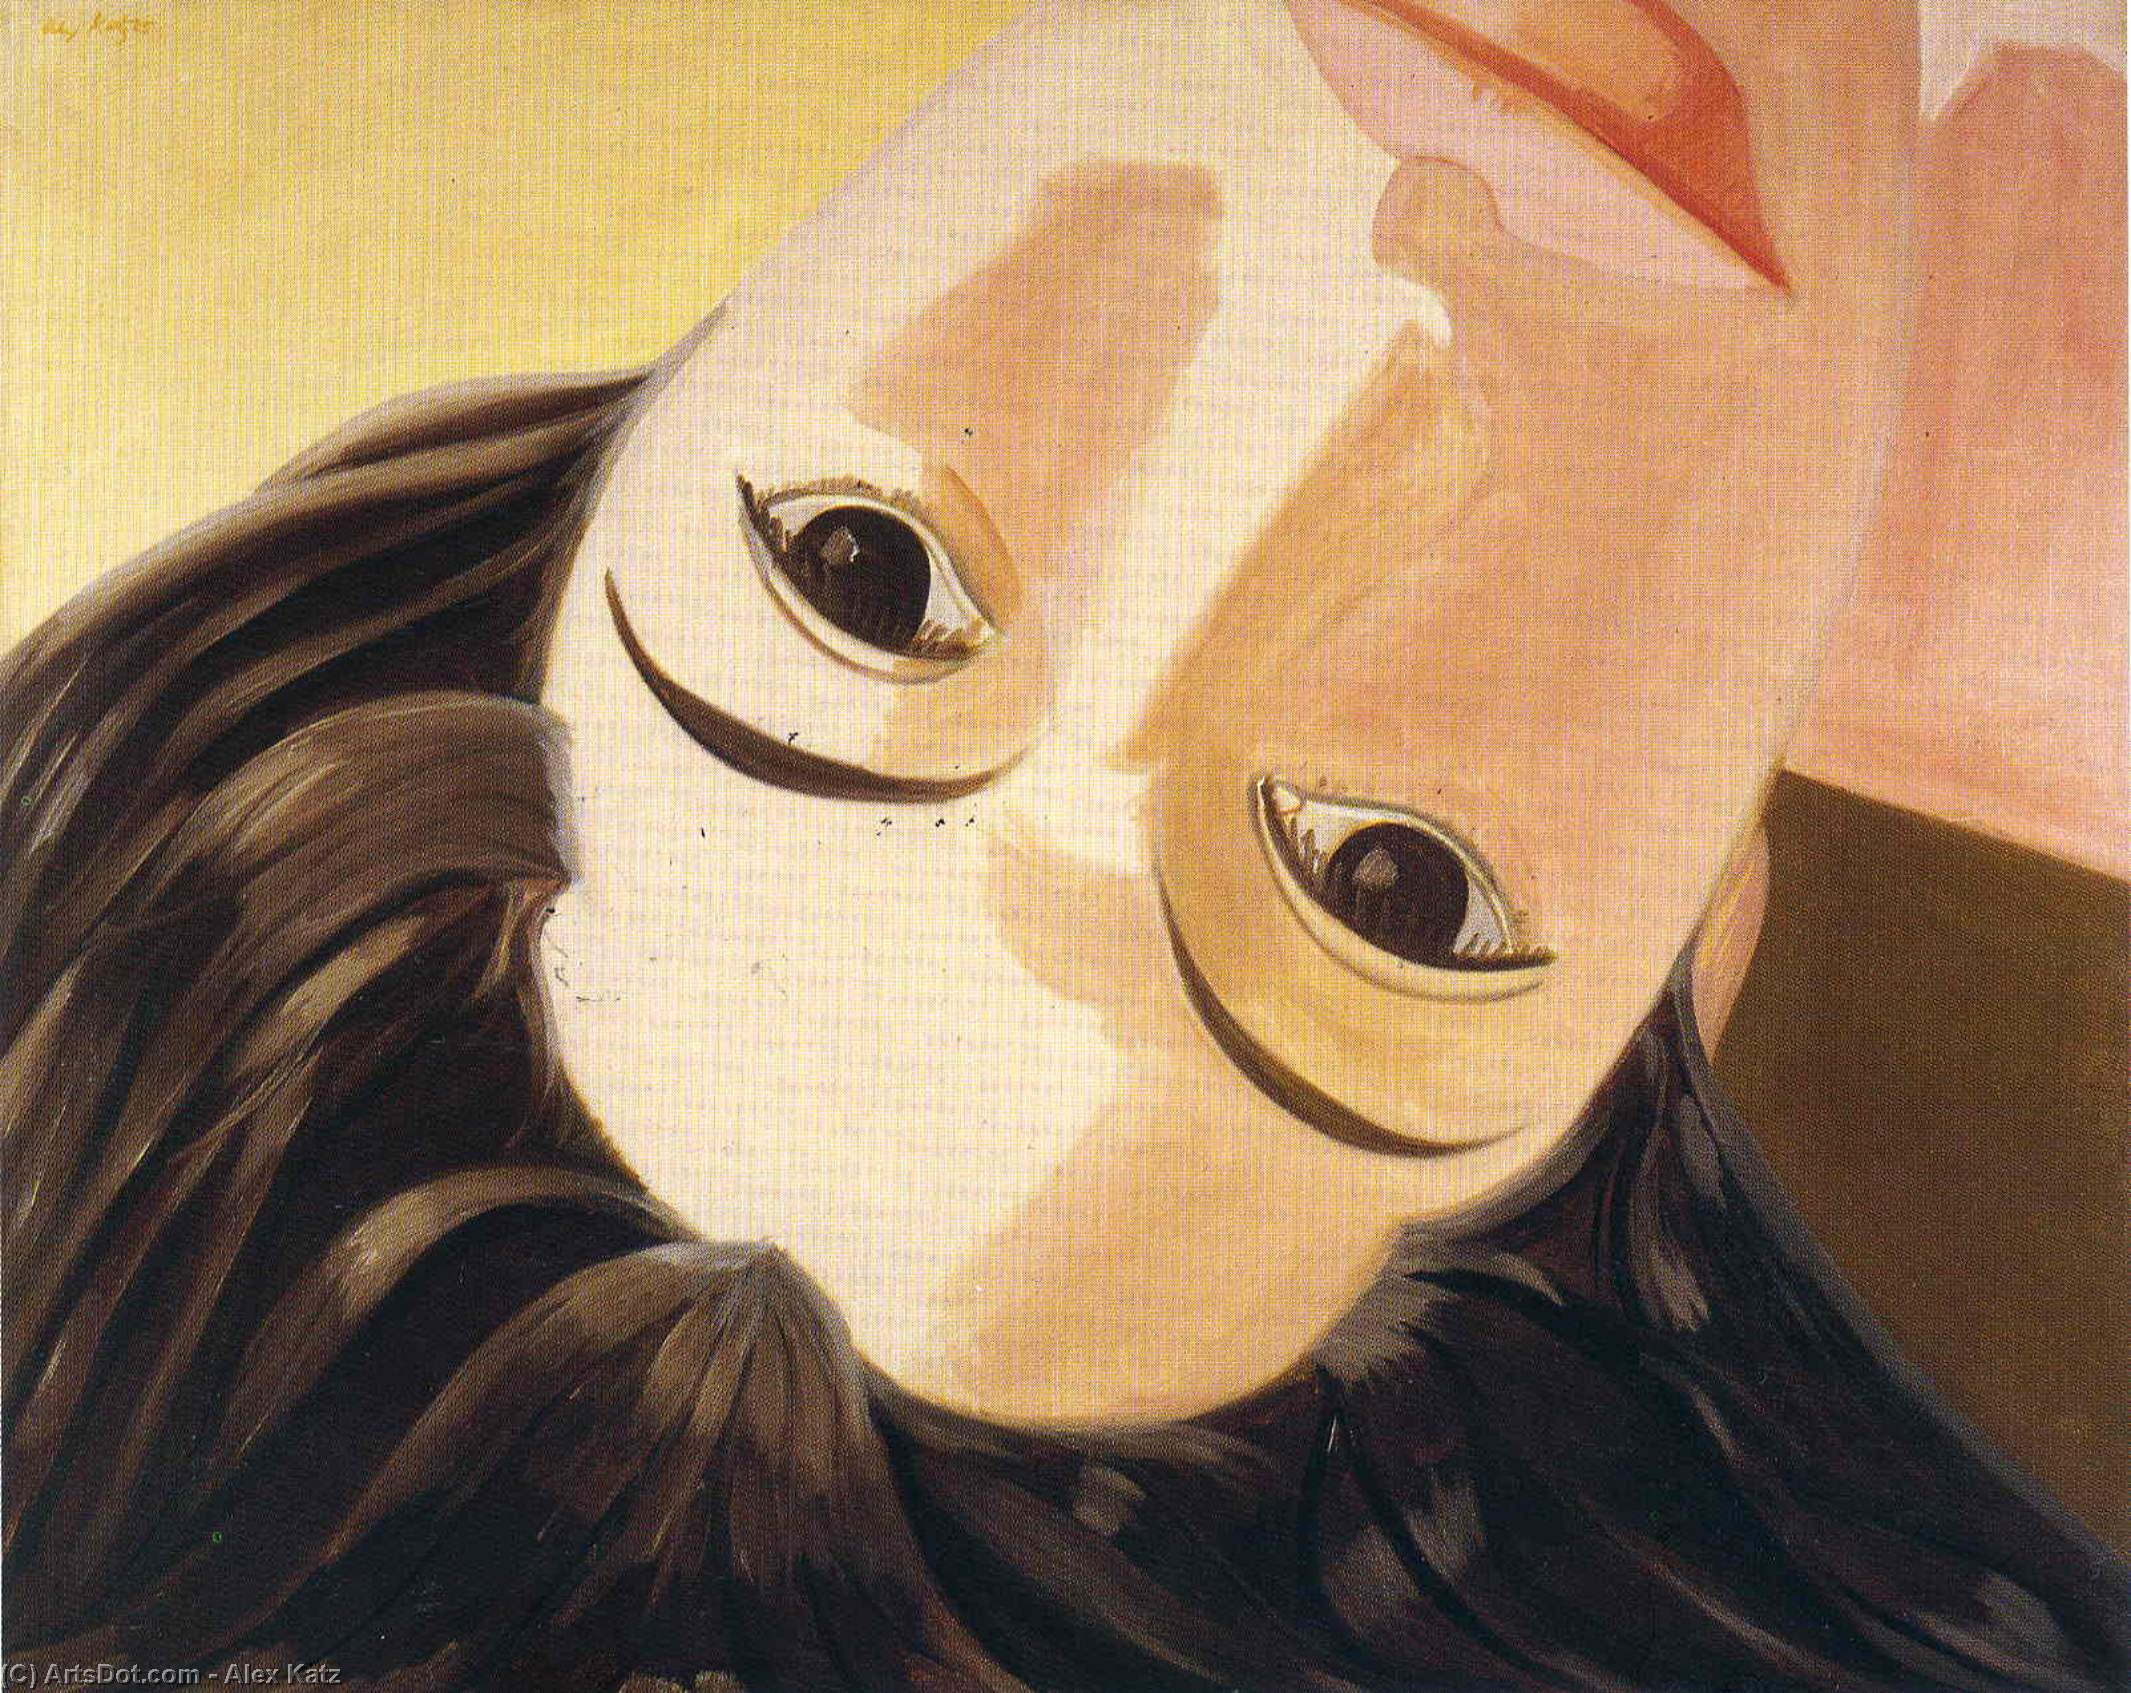 Wikioo.org - The Encyclopedia of Fine Arts - Painting, Artwork by Alex Katz - Upside Down Ada